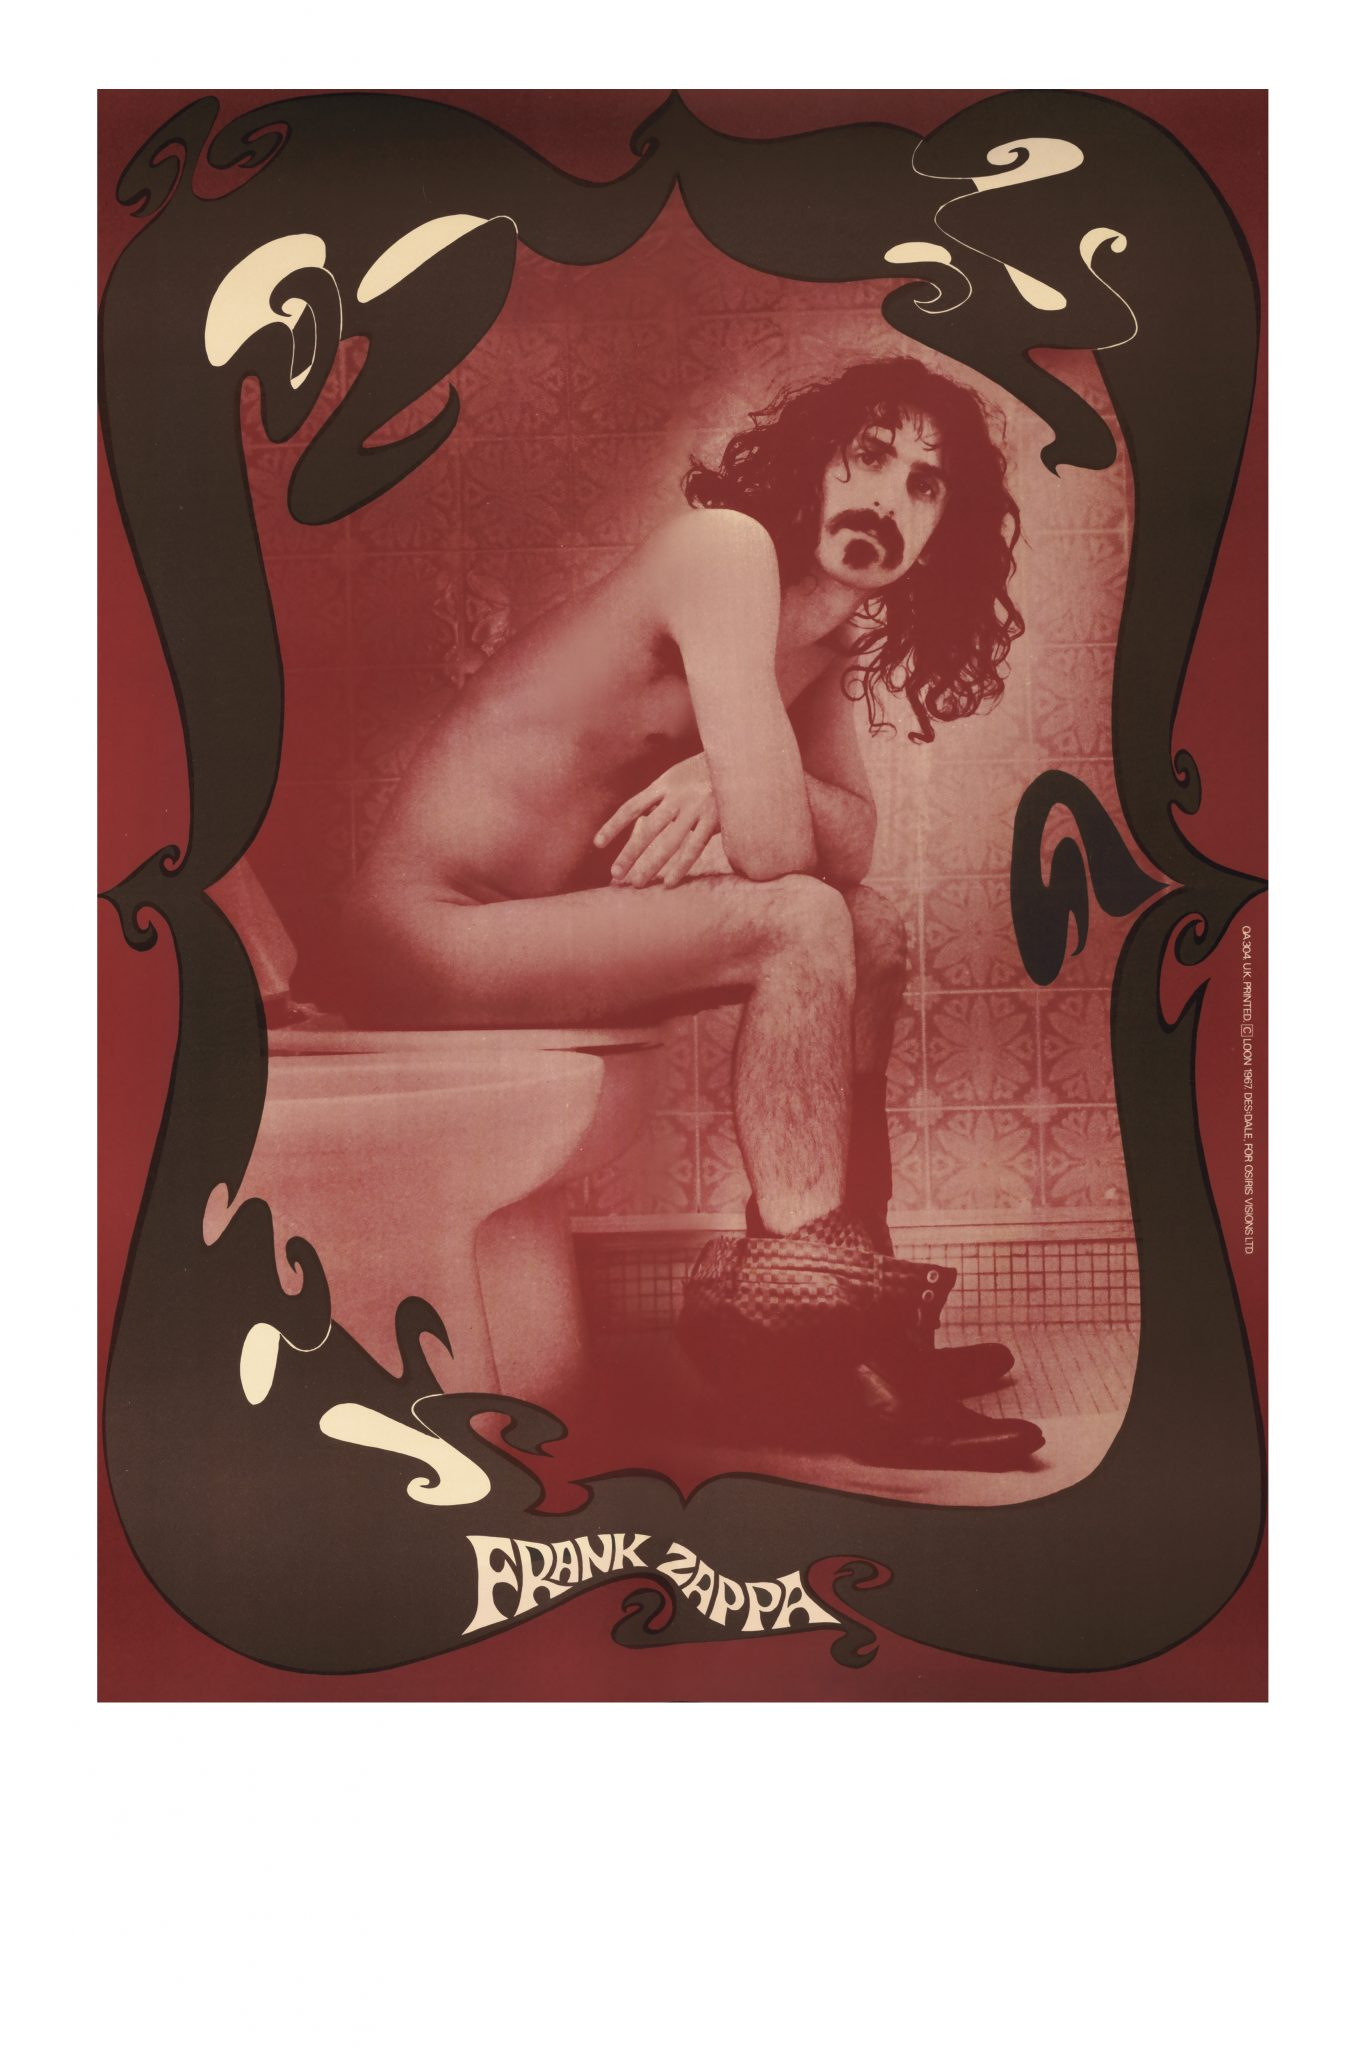 Official 'Zappa Krappa' Toilet Poster released for sale